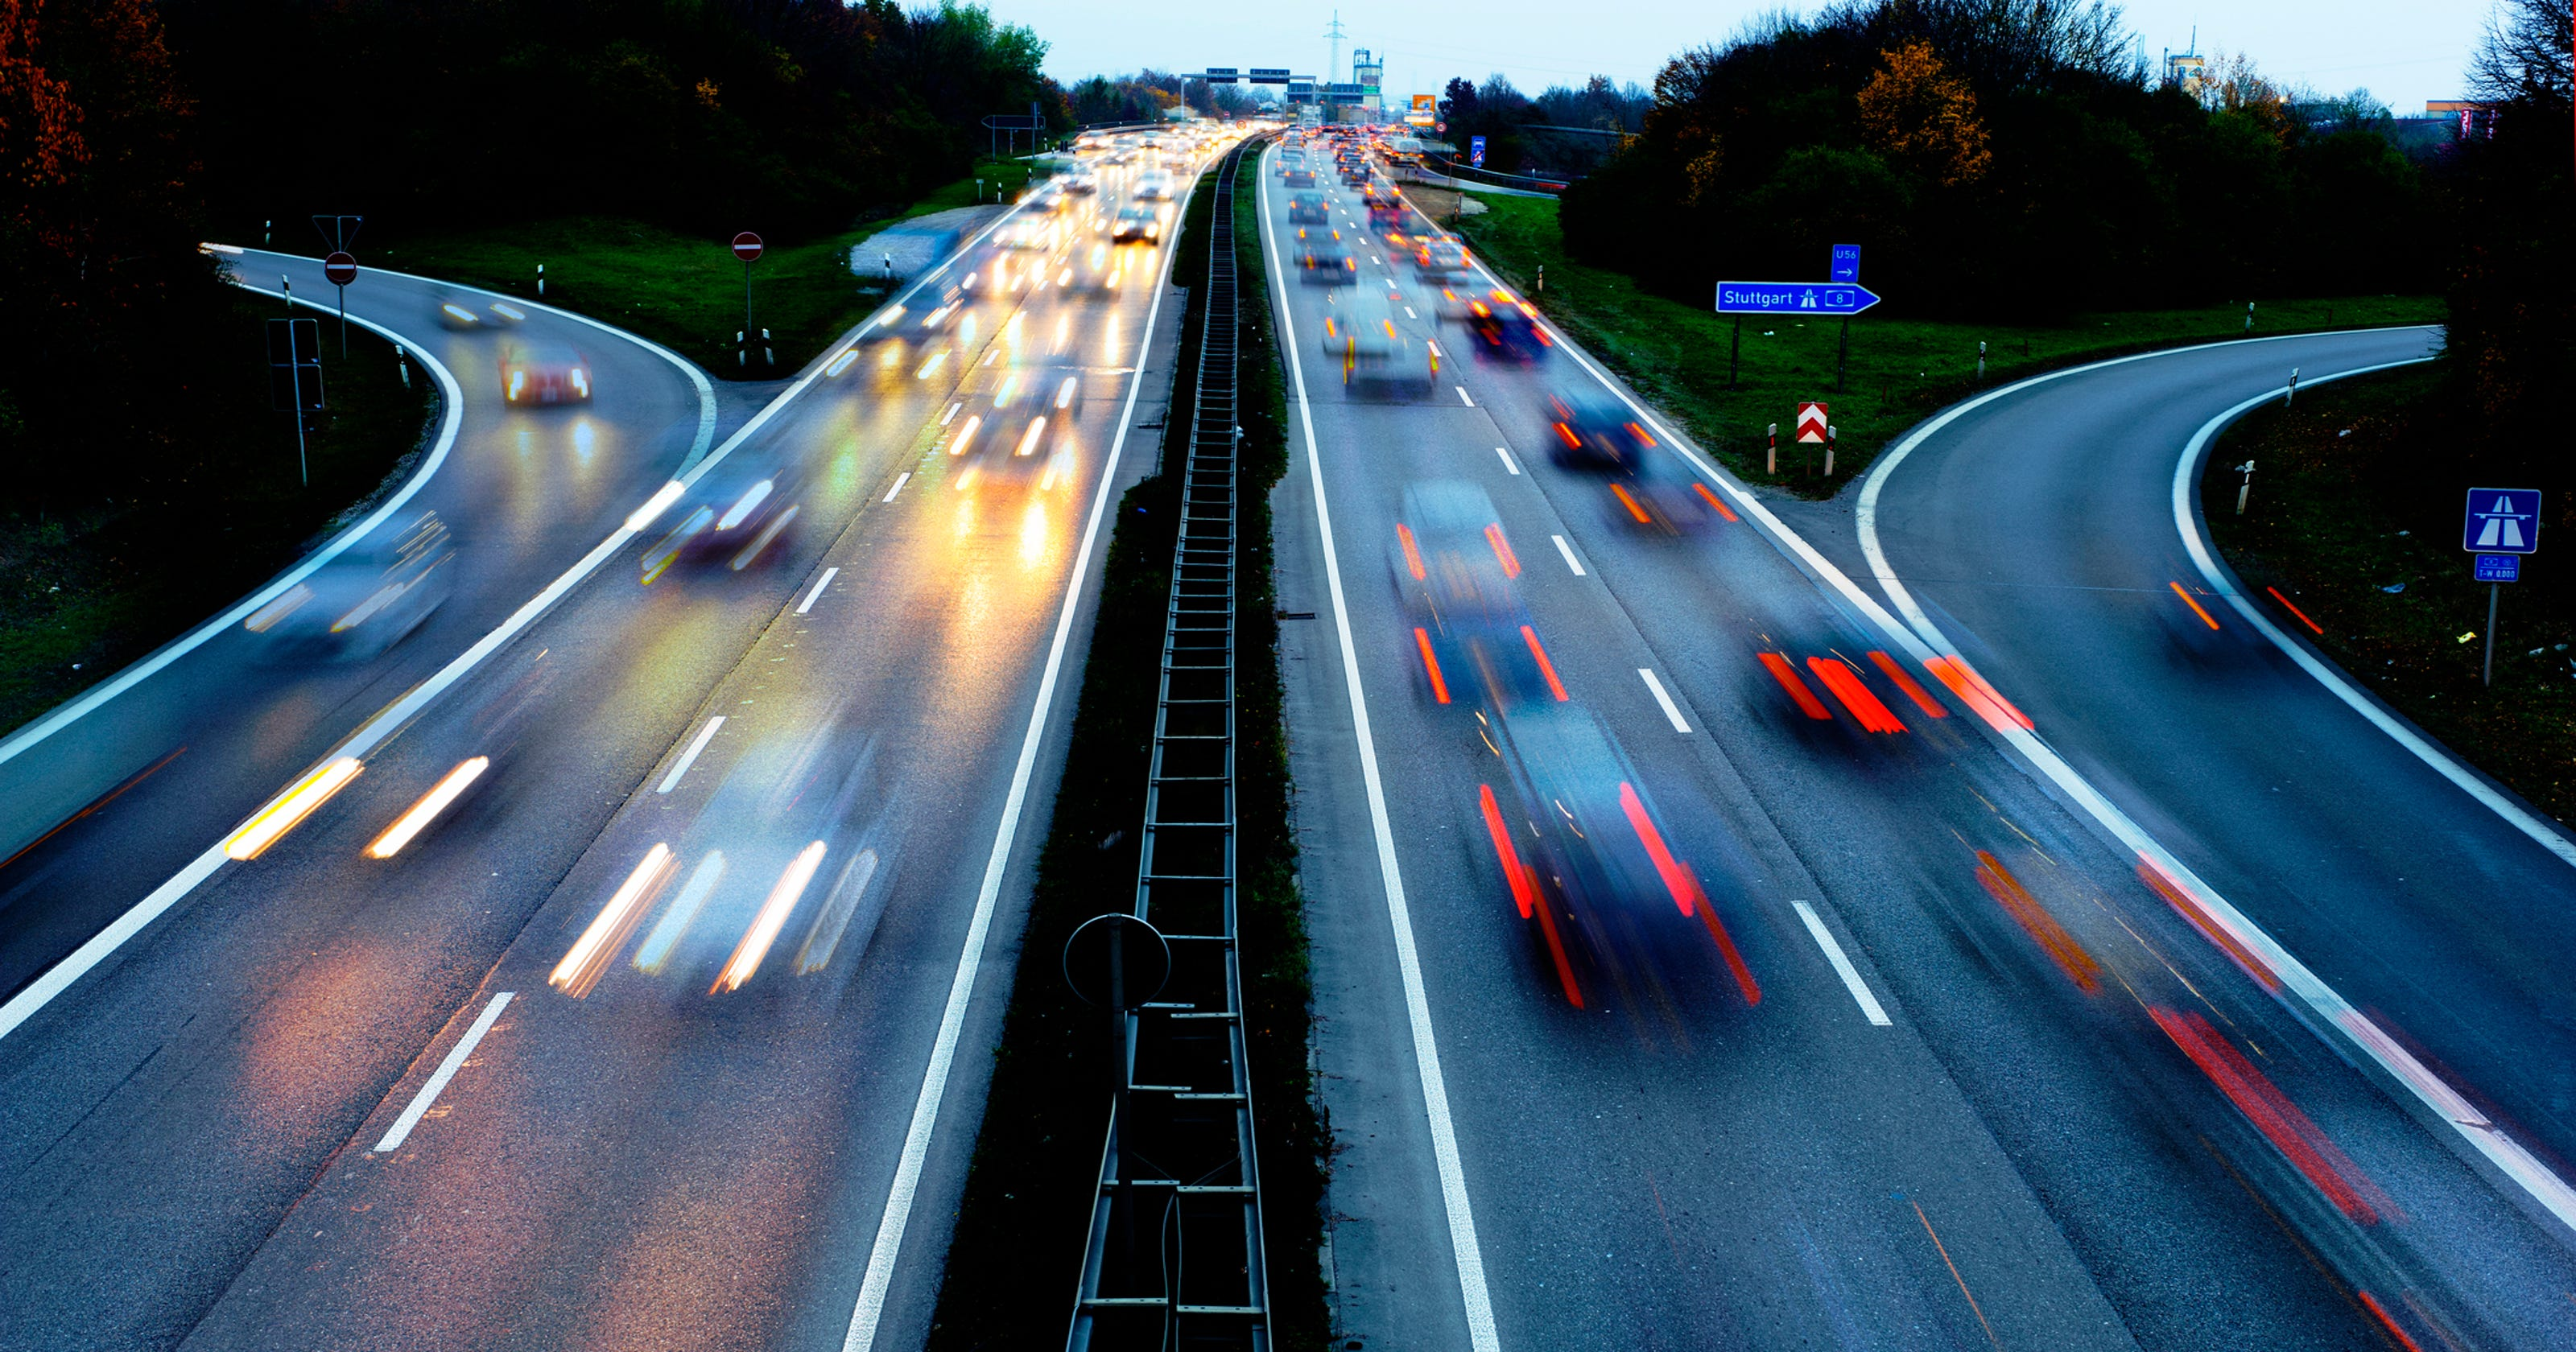 No speed limits: Lawmaker pushes for California Autobahn